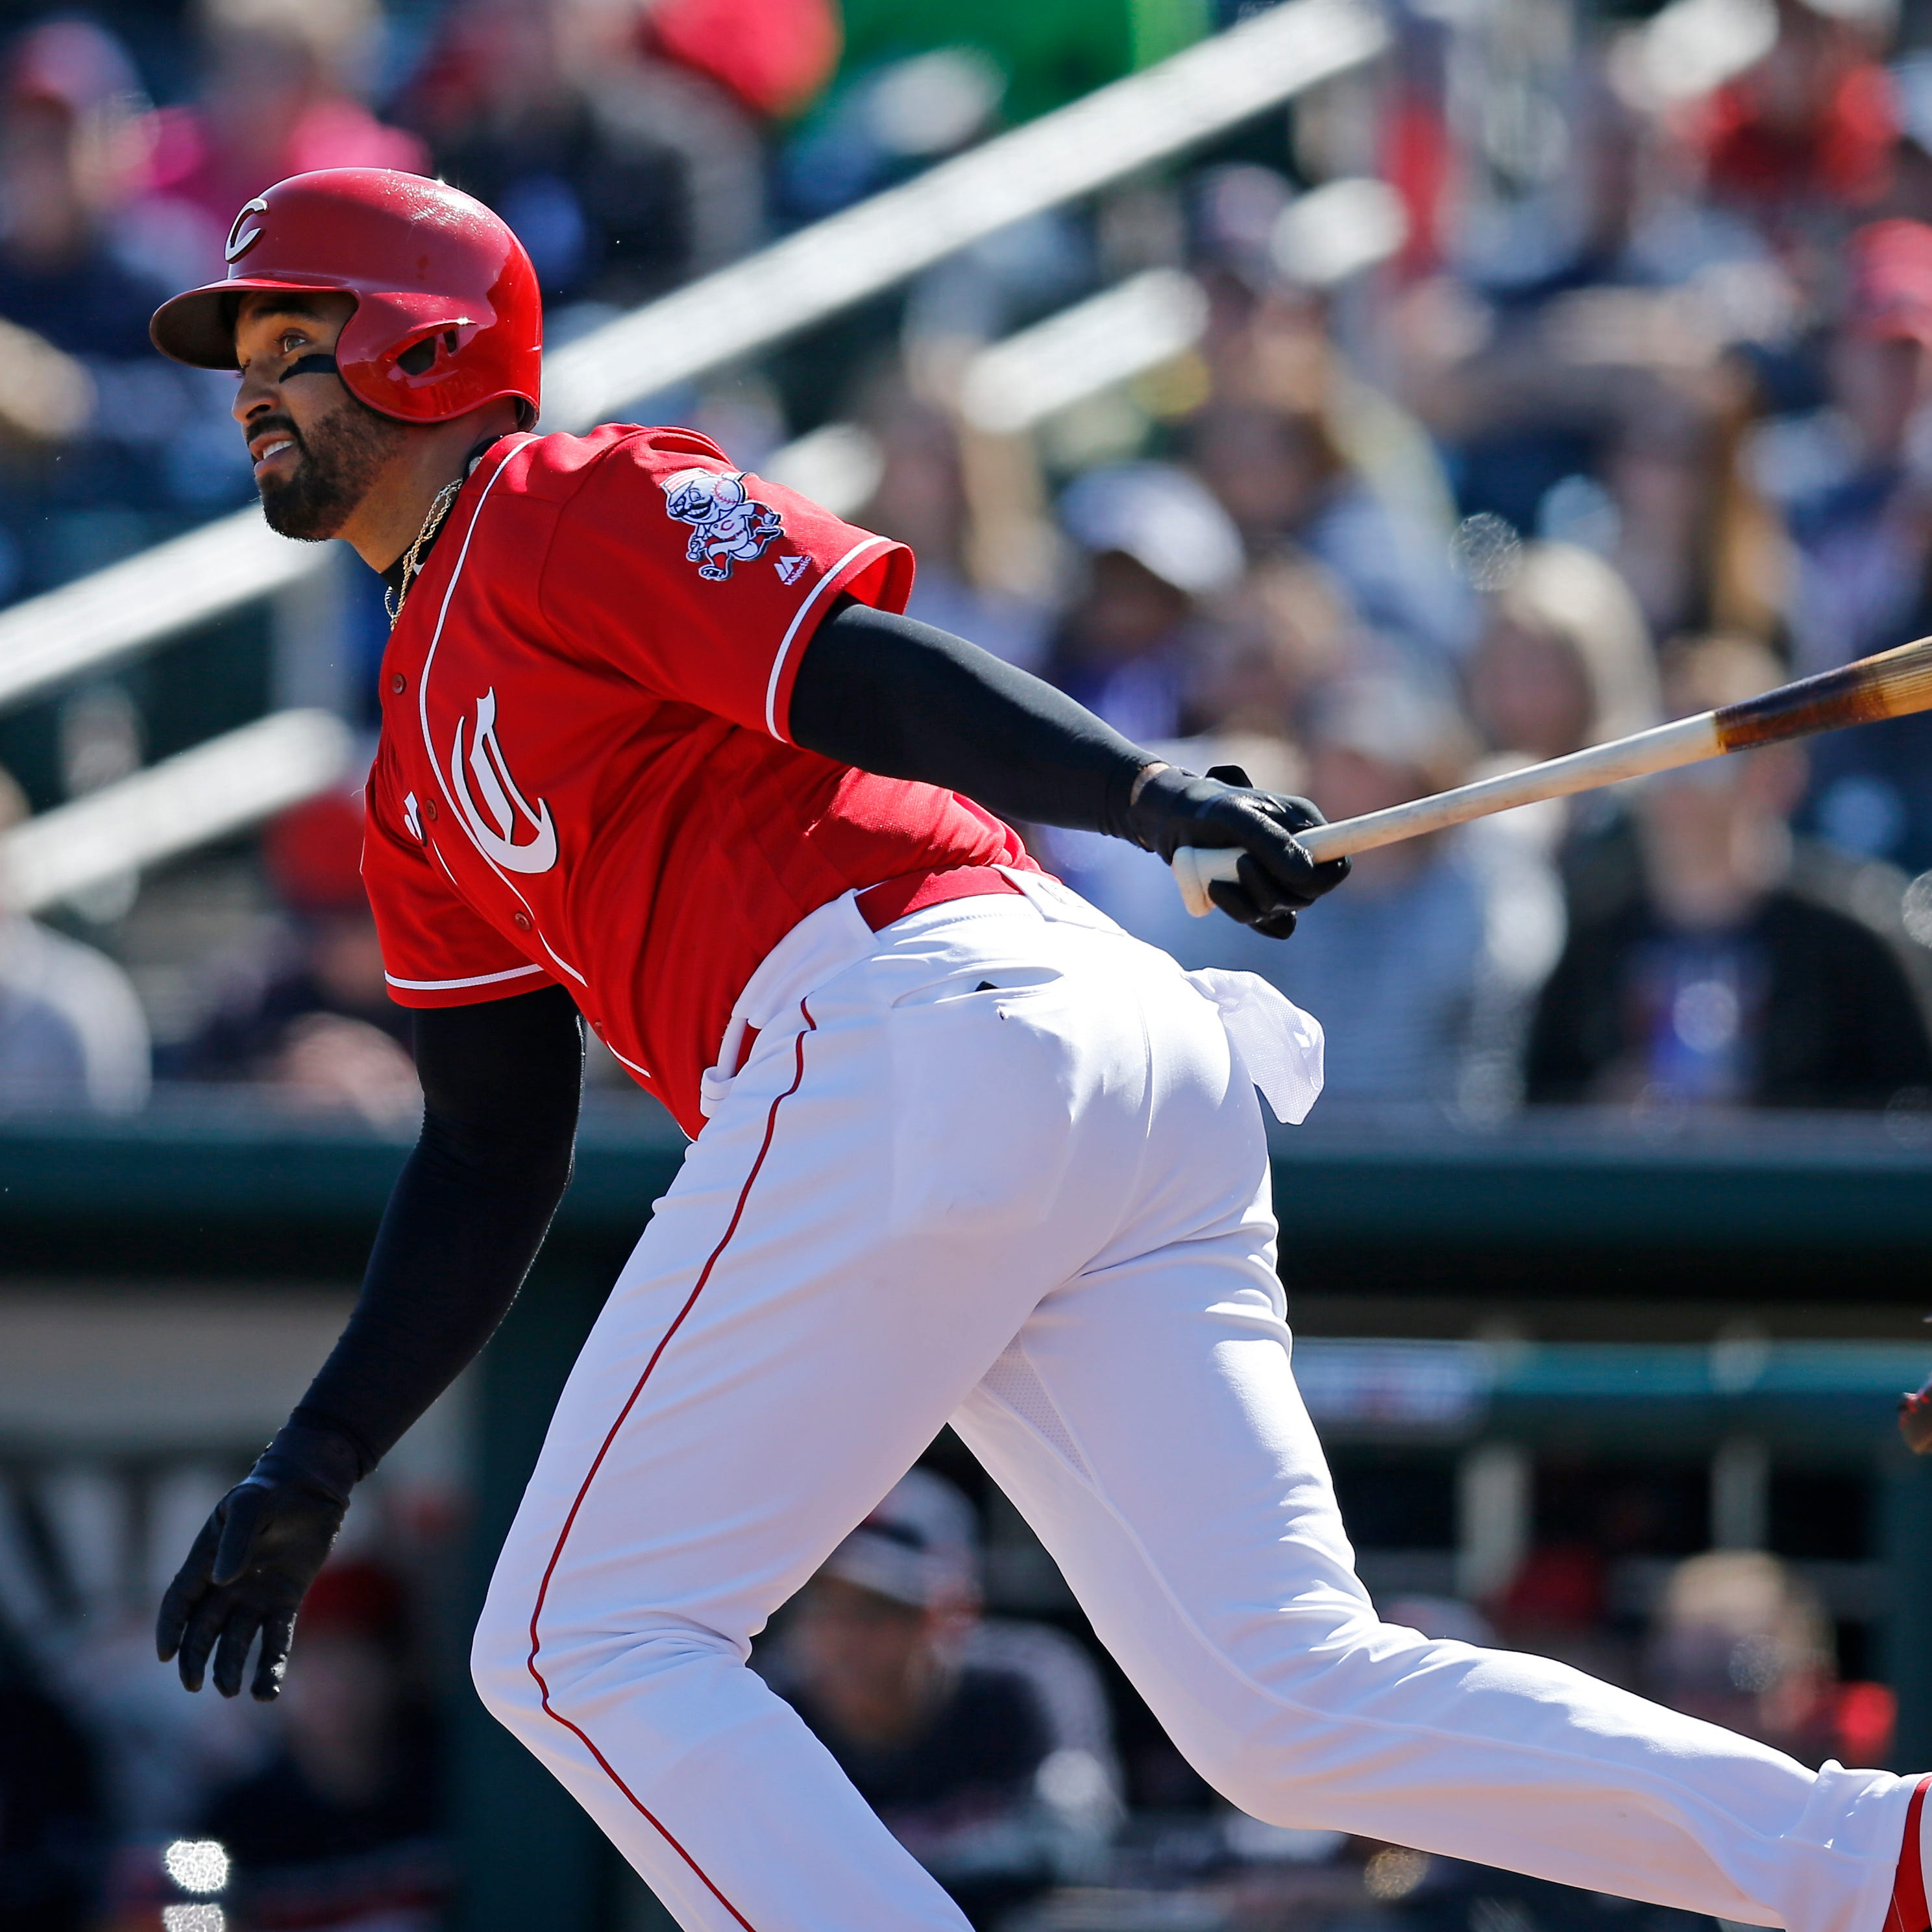 Matt Kemp hits a two-run homer in the Cincinnati Reds' spring training opener